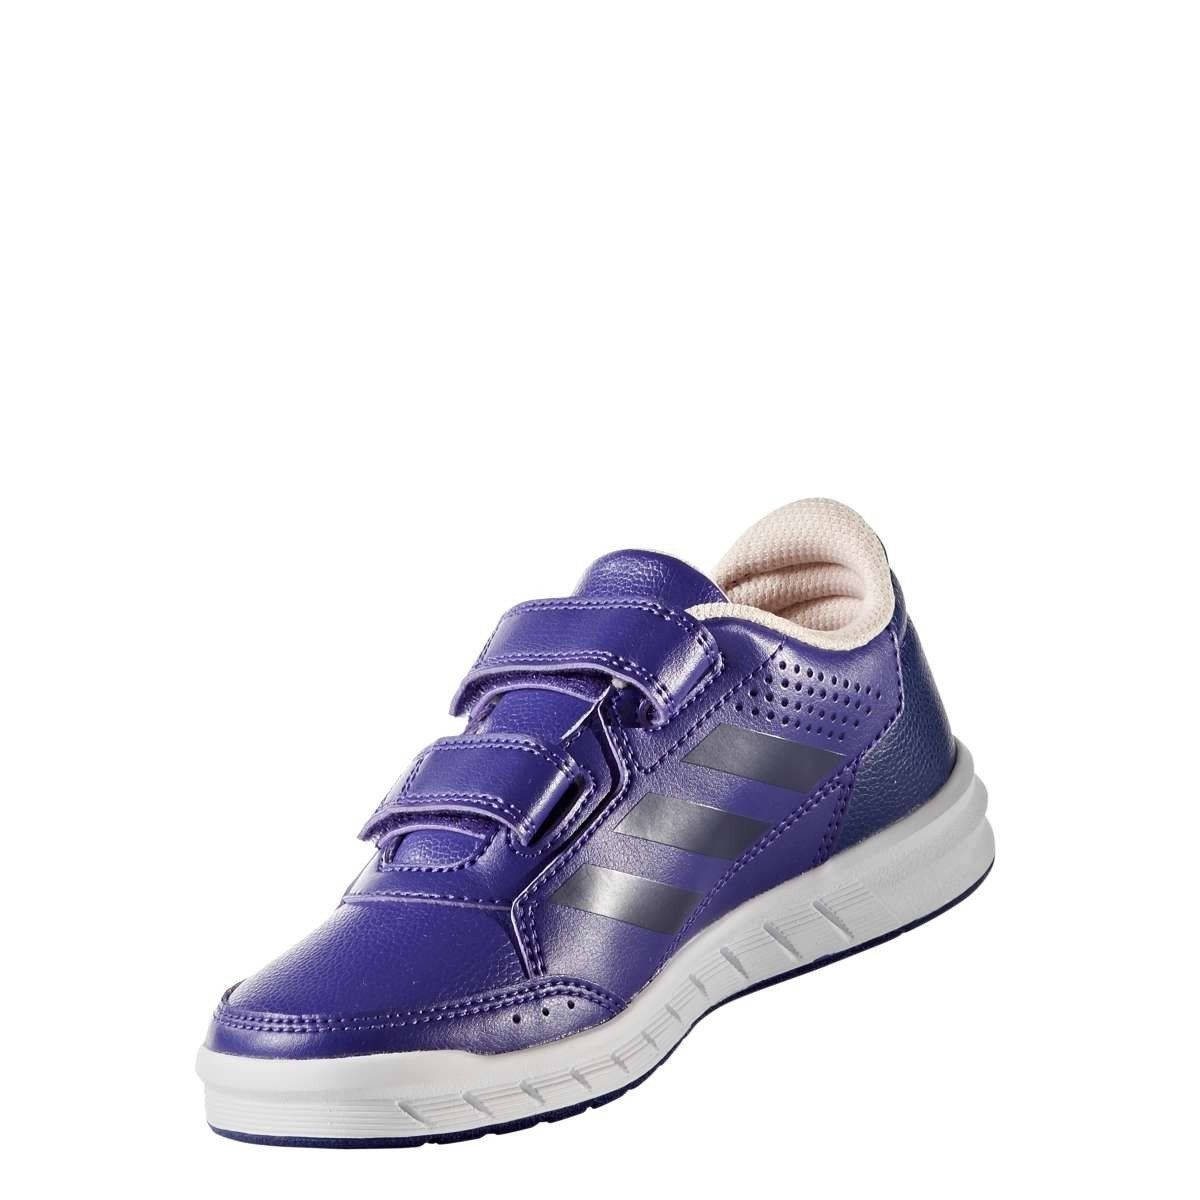 Chaussures Multisport Indoor Mixte Enfant Kempa Wing Junior Ebbe /& Flut